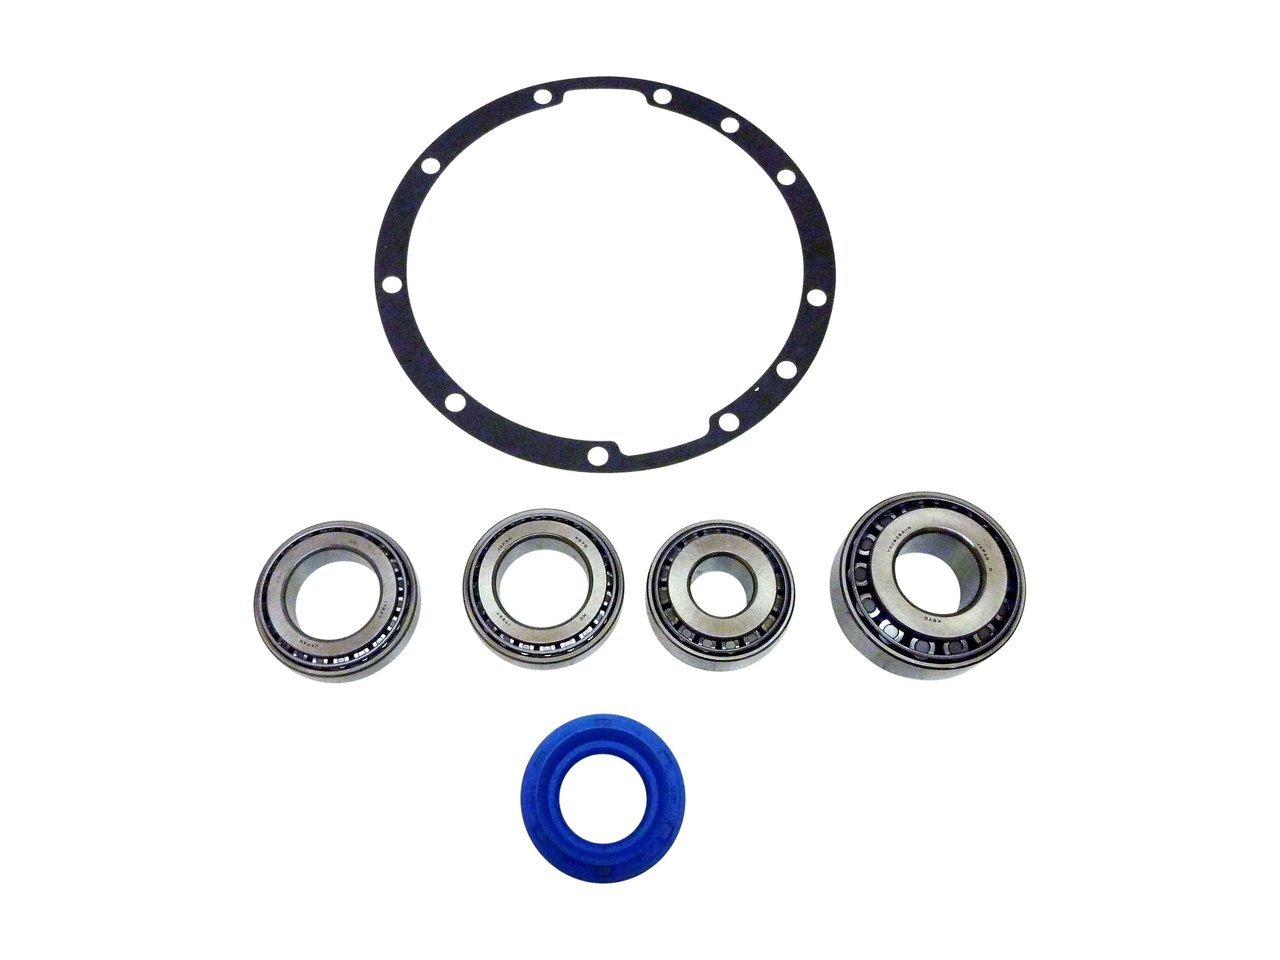 Power Steering Box Seal Kit GQ Y60 Nissan Patrol 1988 1993 05553 33263 besides Maverick Rocker Switch Wiring Diagram in addition 2015 Ford F150 Gear Ratio For Rear Axle additionally Can Am Defender Wiring Diagram Free Download additionally 4bkz5 Ford Maverick I Ve 1971 Maverick I M Trying. on the new ford maverick